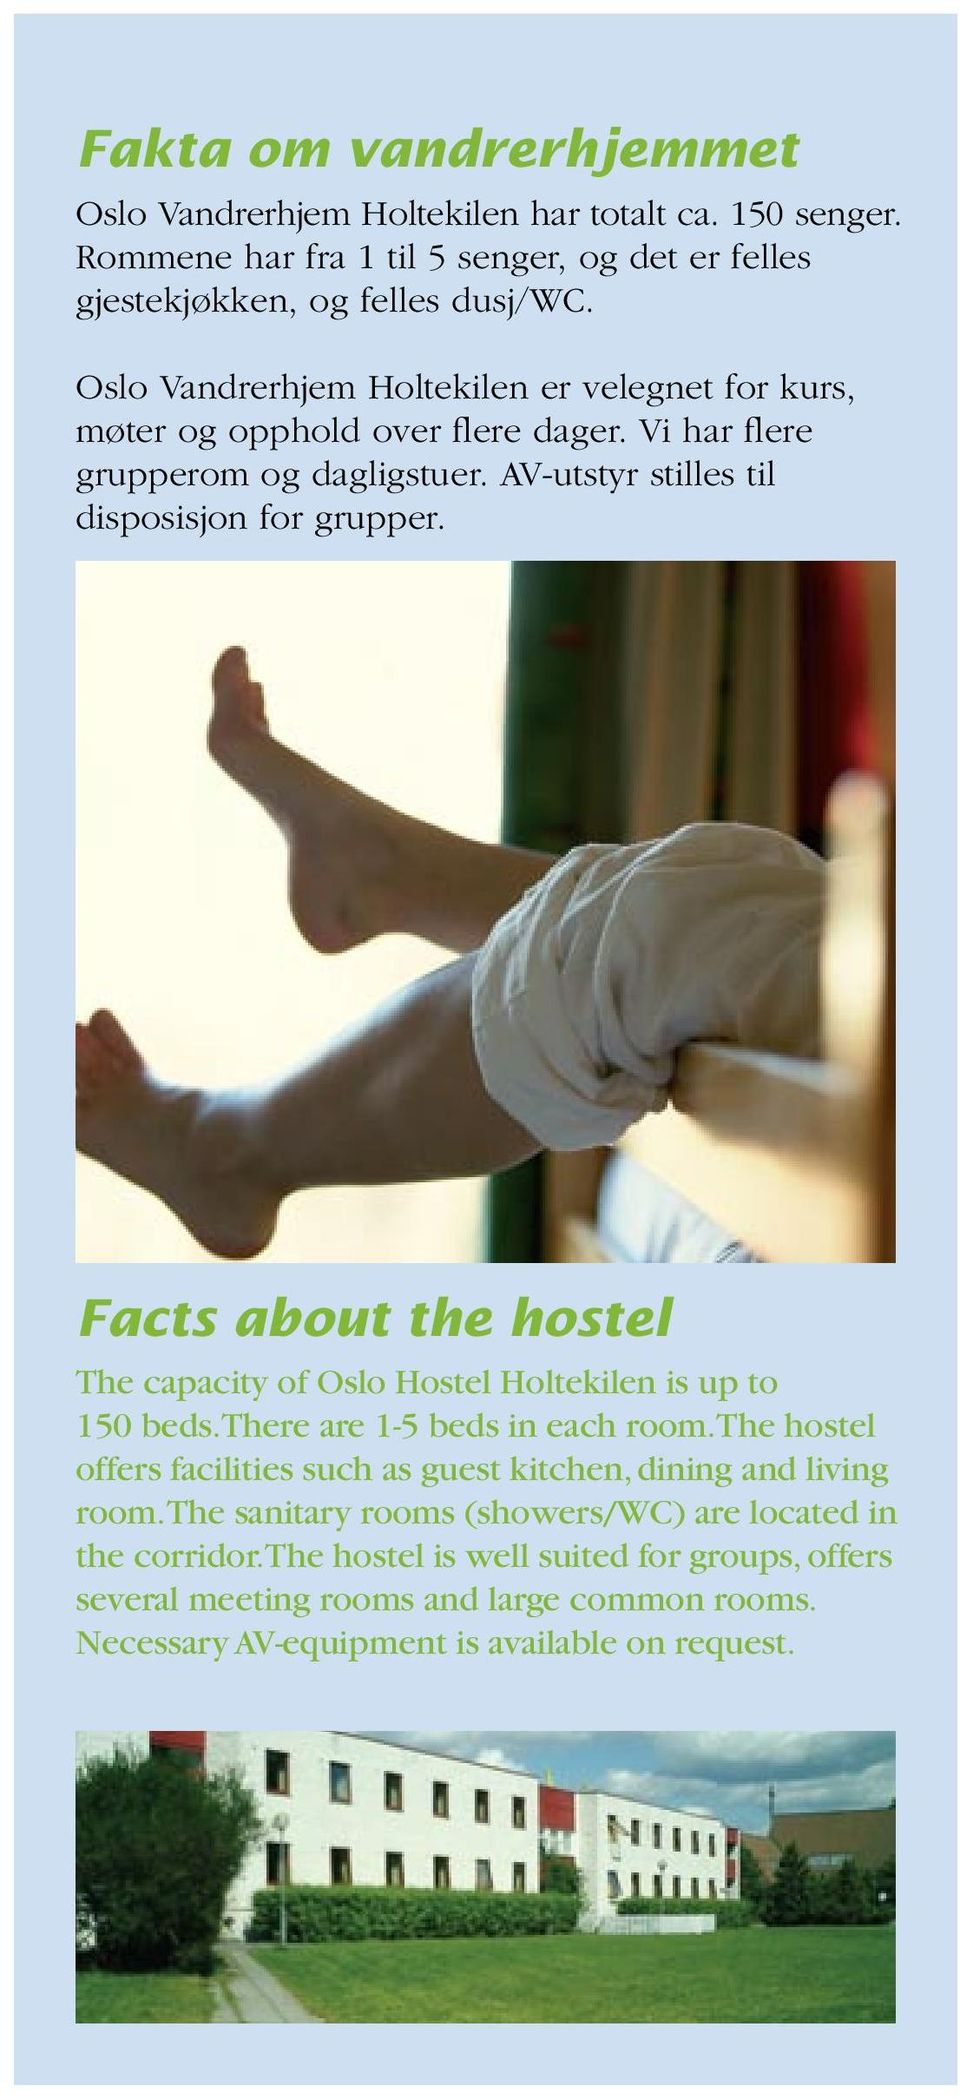 Facts about the hostel The capacity of Oslo Hostel Holtekilen is up to 150 beds. There are 1-5 beds in each room.